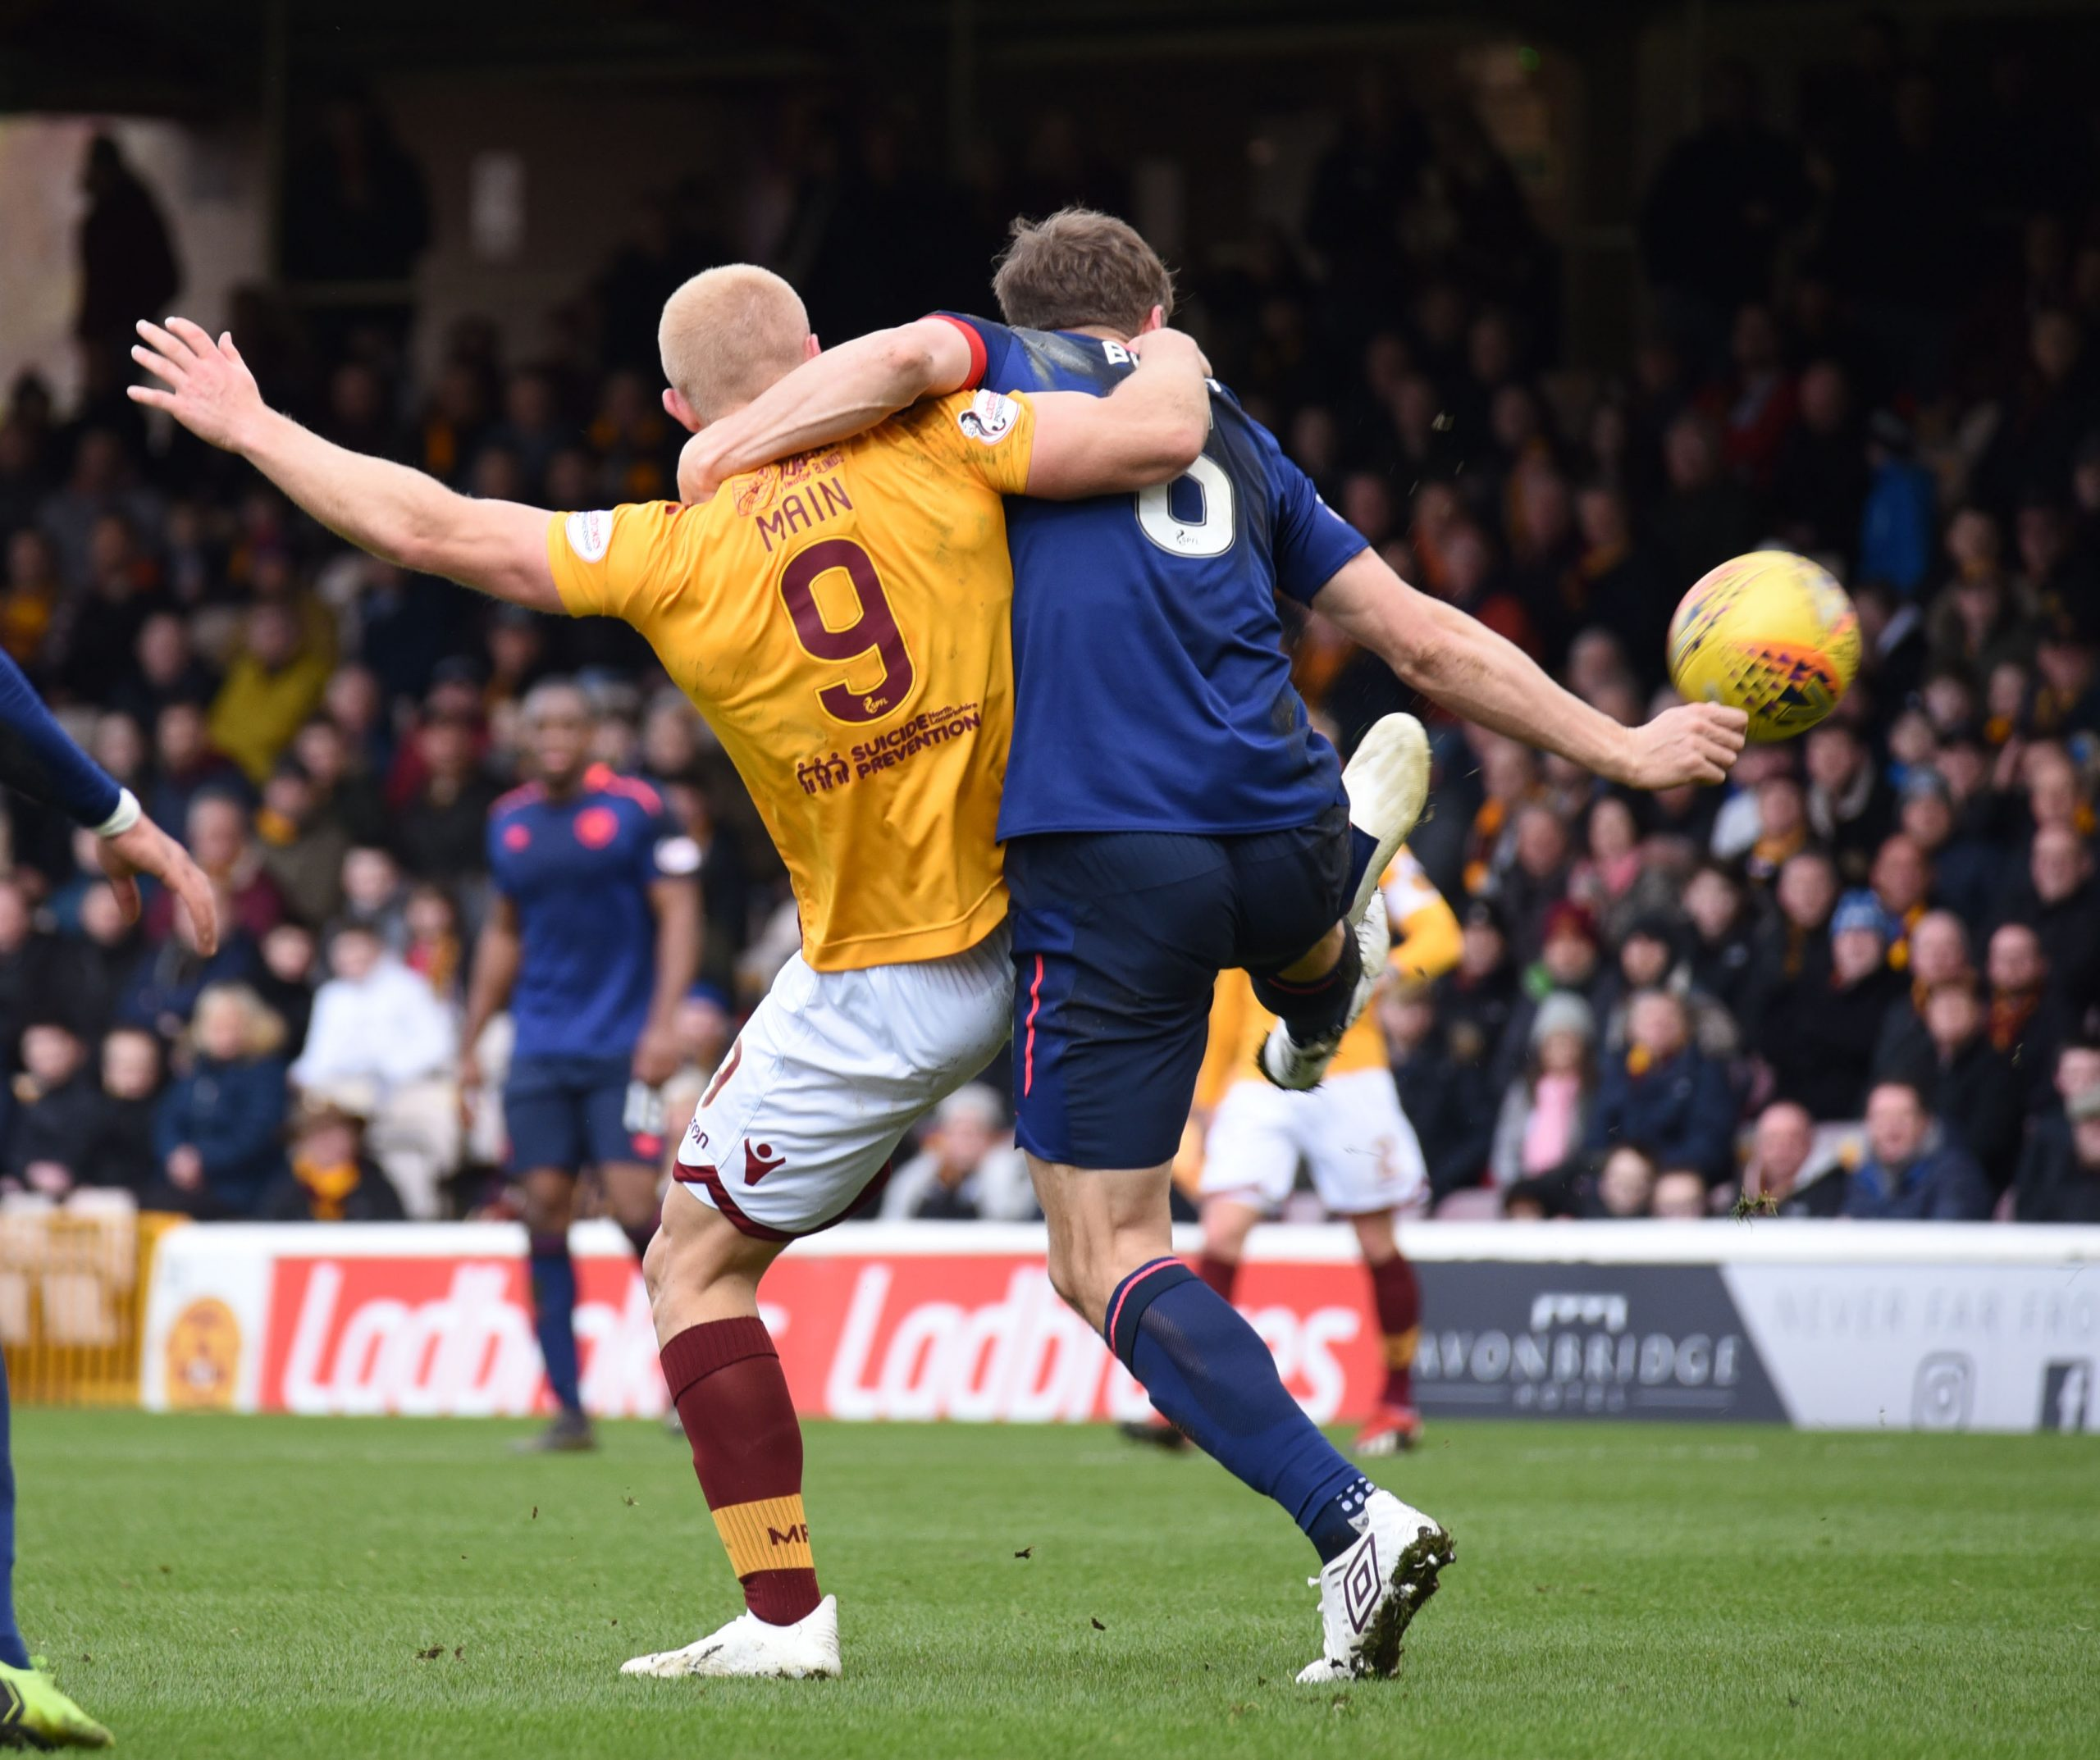 motherwell v Hearts , Scottish premeirship